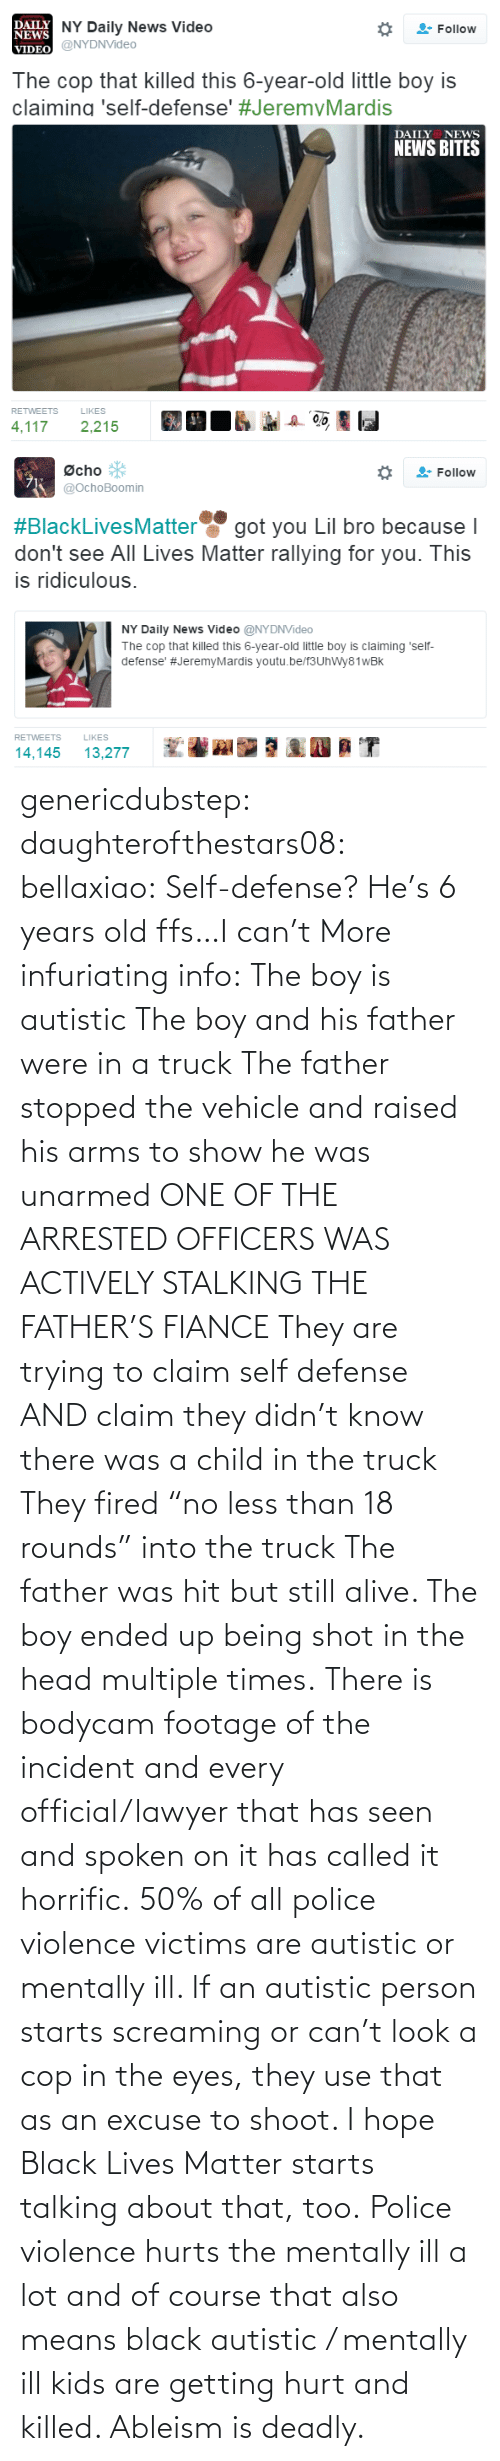 "means: genericdubstep: daughterofthestars08:  bellaxiao:  Self-defense? He's 6 years old ffs…I can't  More infuriating info: The boy is autistic The boy and his father were in a truck The father stopped the vehicle and raised his arms to show he was unarmed ONE OF THE ARRESTED OFFICERS WAS ACTIVELY STALKING THE FATHER'S FIANCE They are trying to claim self defense AND claim they didn't know there was a child in the truck They fired ""no less than 18 rounds"" into the truck The father was hit but still alive. The boy ended up being shot in the head multiple times. There is bodycam footage of the incident and every official/lawyer that has seen and spoken on it has called it horrific.  50% of all police violence victims are autistic or mentally ill. If an autistic person starts screaming or can't look a cop in the eyes, they use that as an excuse to shoot. I hope Black Lives Matter starts talking about that, too. Police violence hurts the mentally ill a lot and of course that also means black autistic / mentally ill kids are getting hurt and killed. Ableism is deadly."